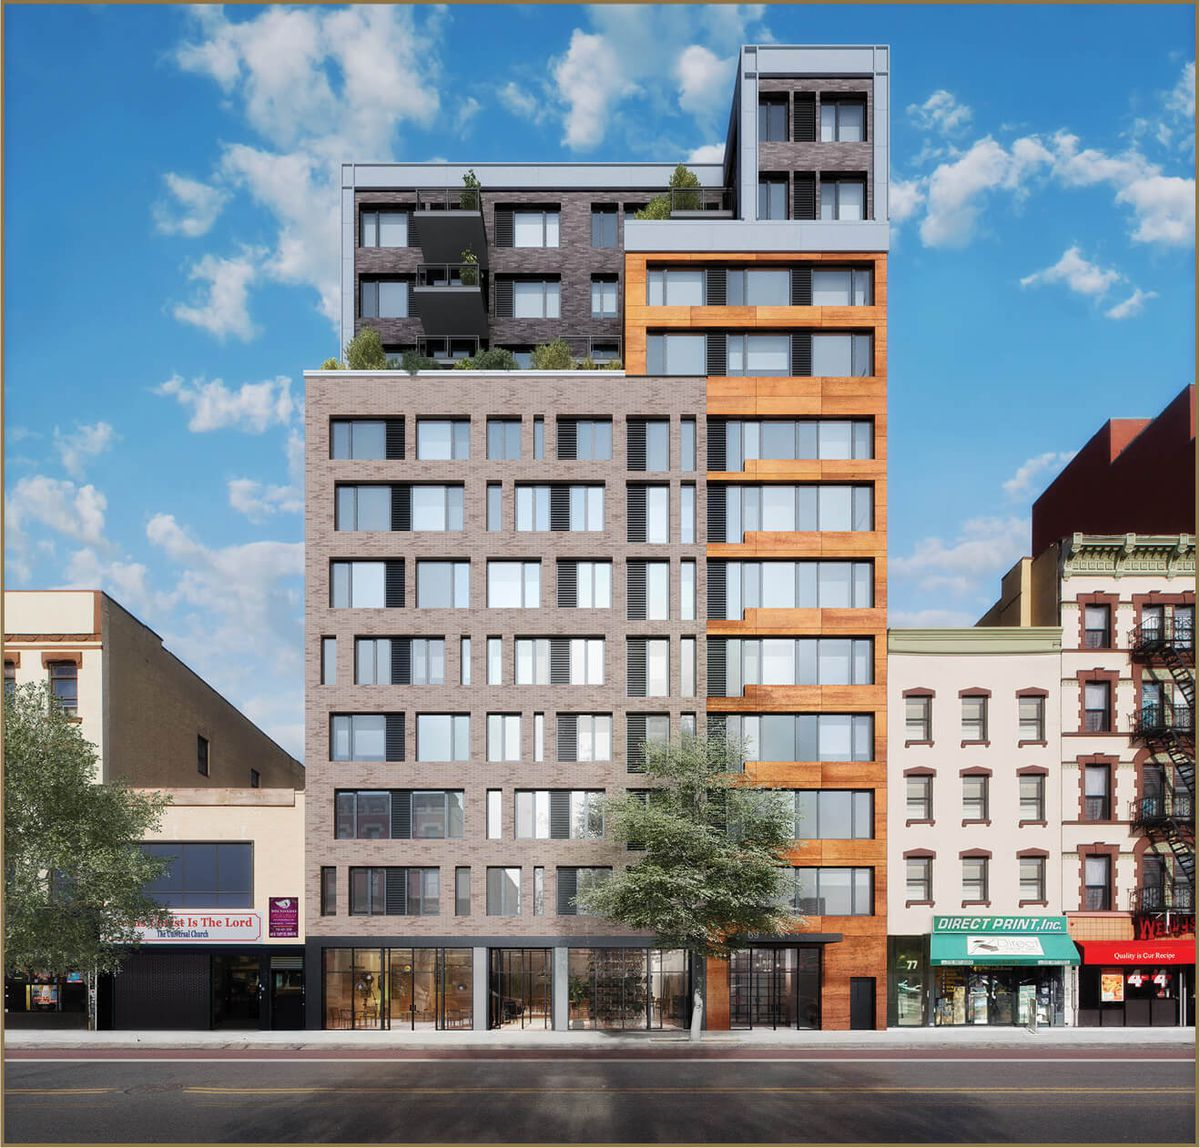 Cheap Apartments Outside Bricks: East Harlem's Latest Luxury Rental, Harlem 125, Gets New